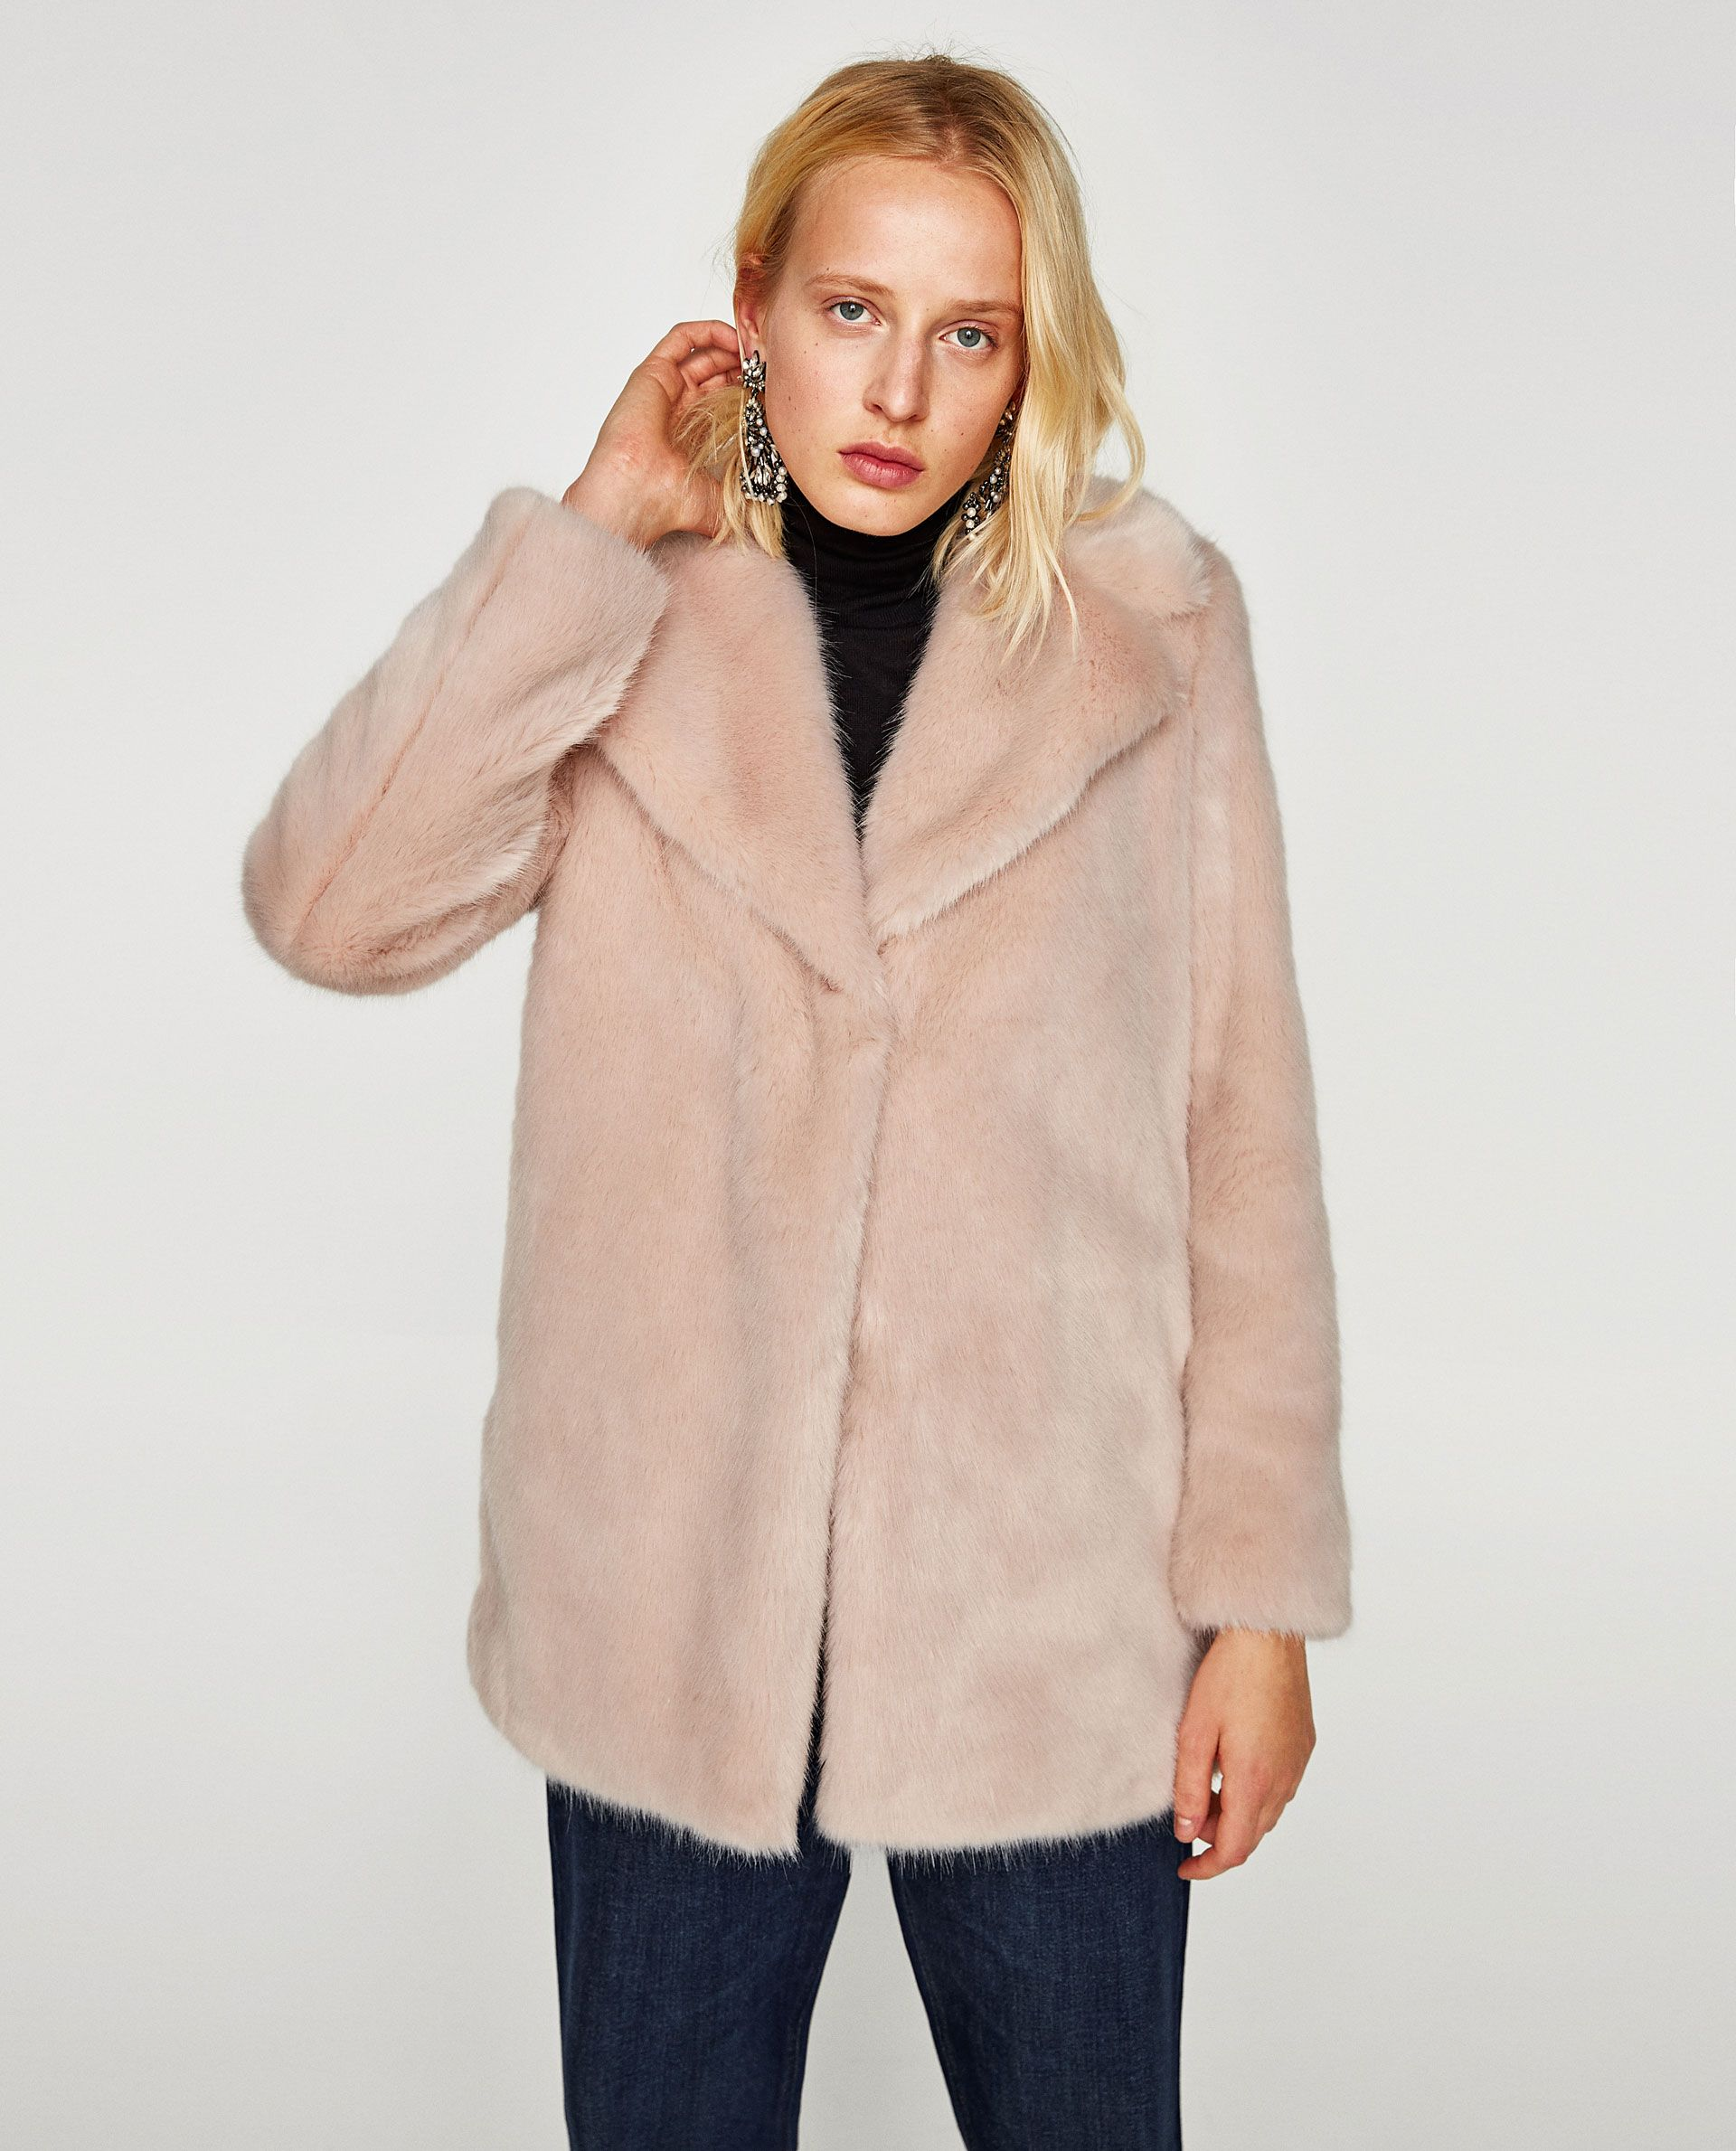 c5740077 Zara coats - best Zara winter coats for 2017